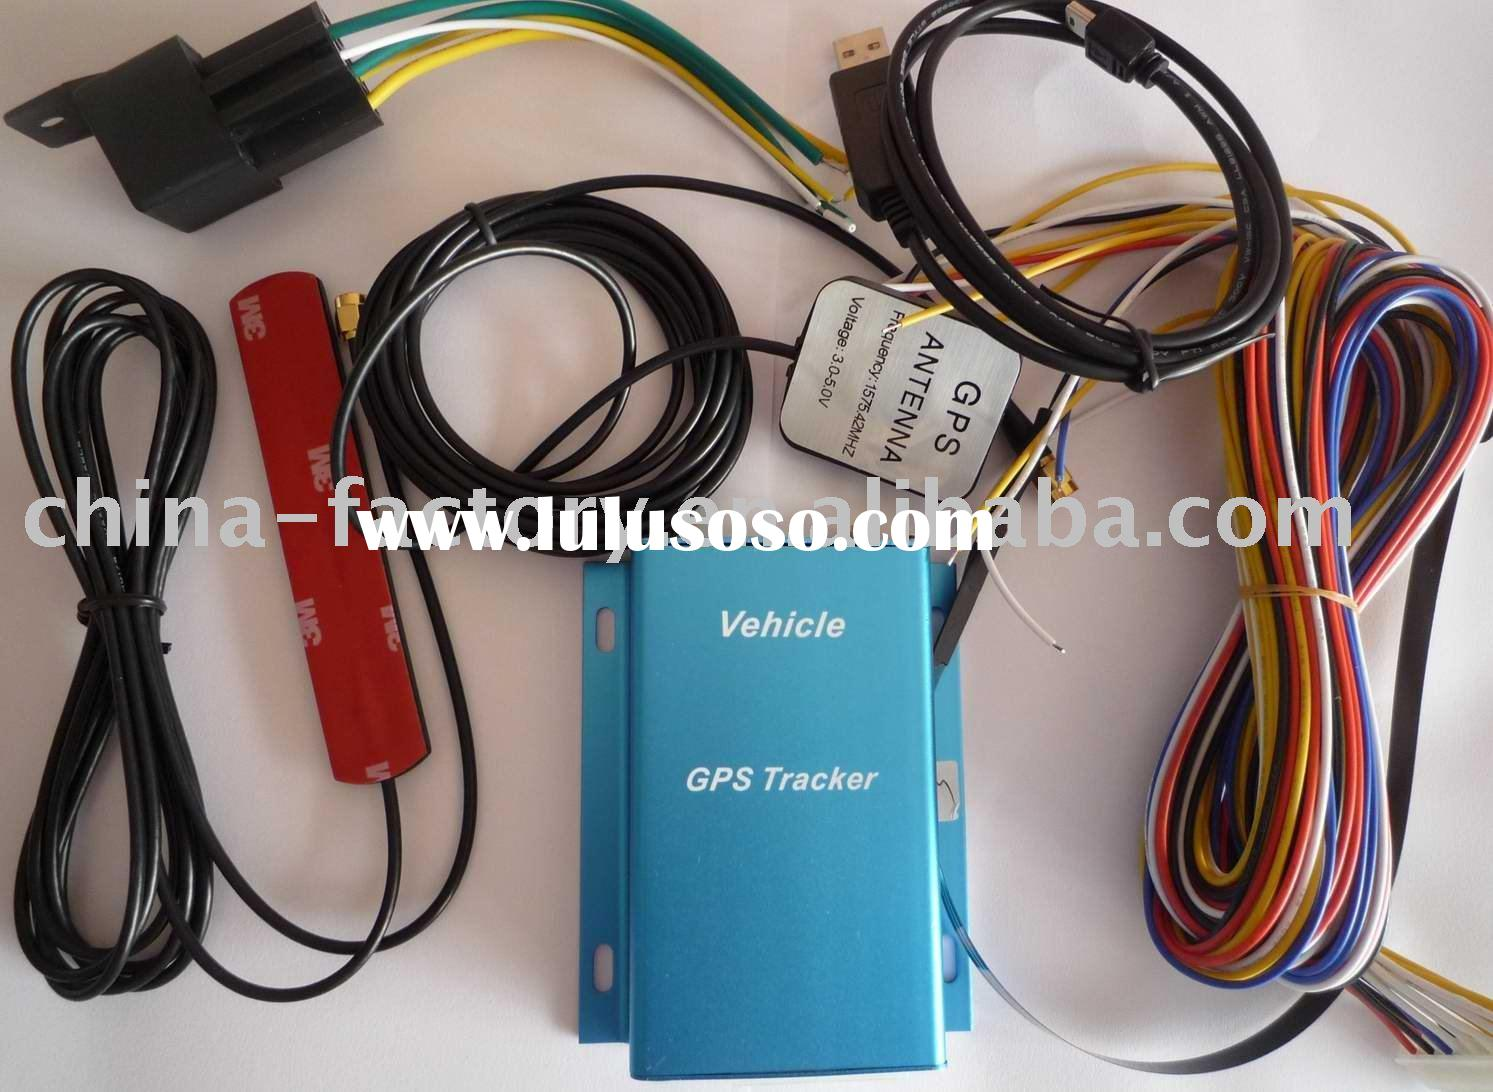 Proffesional 3G Car GPS Vehicle Tracker with DVR funtion